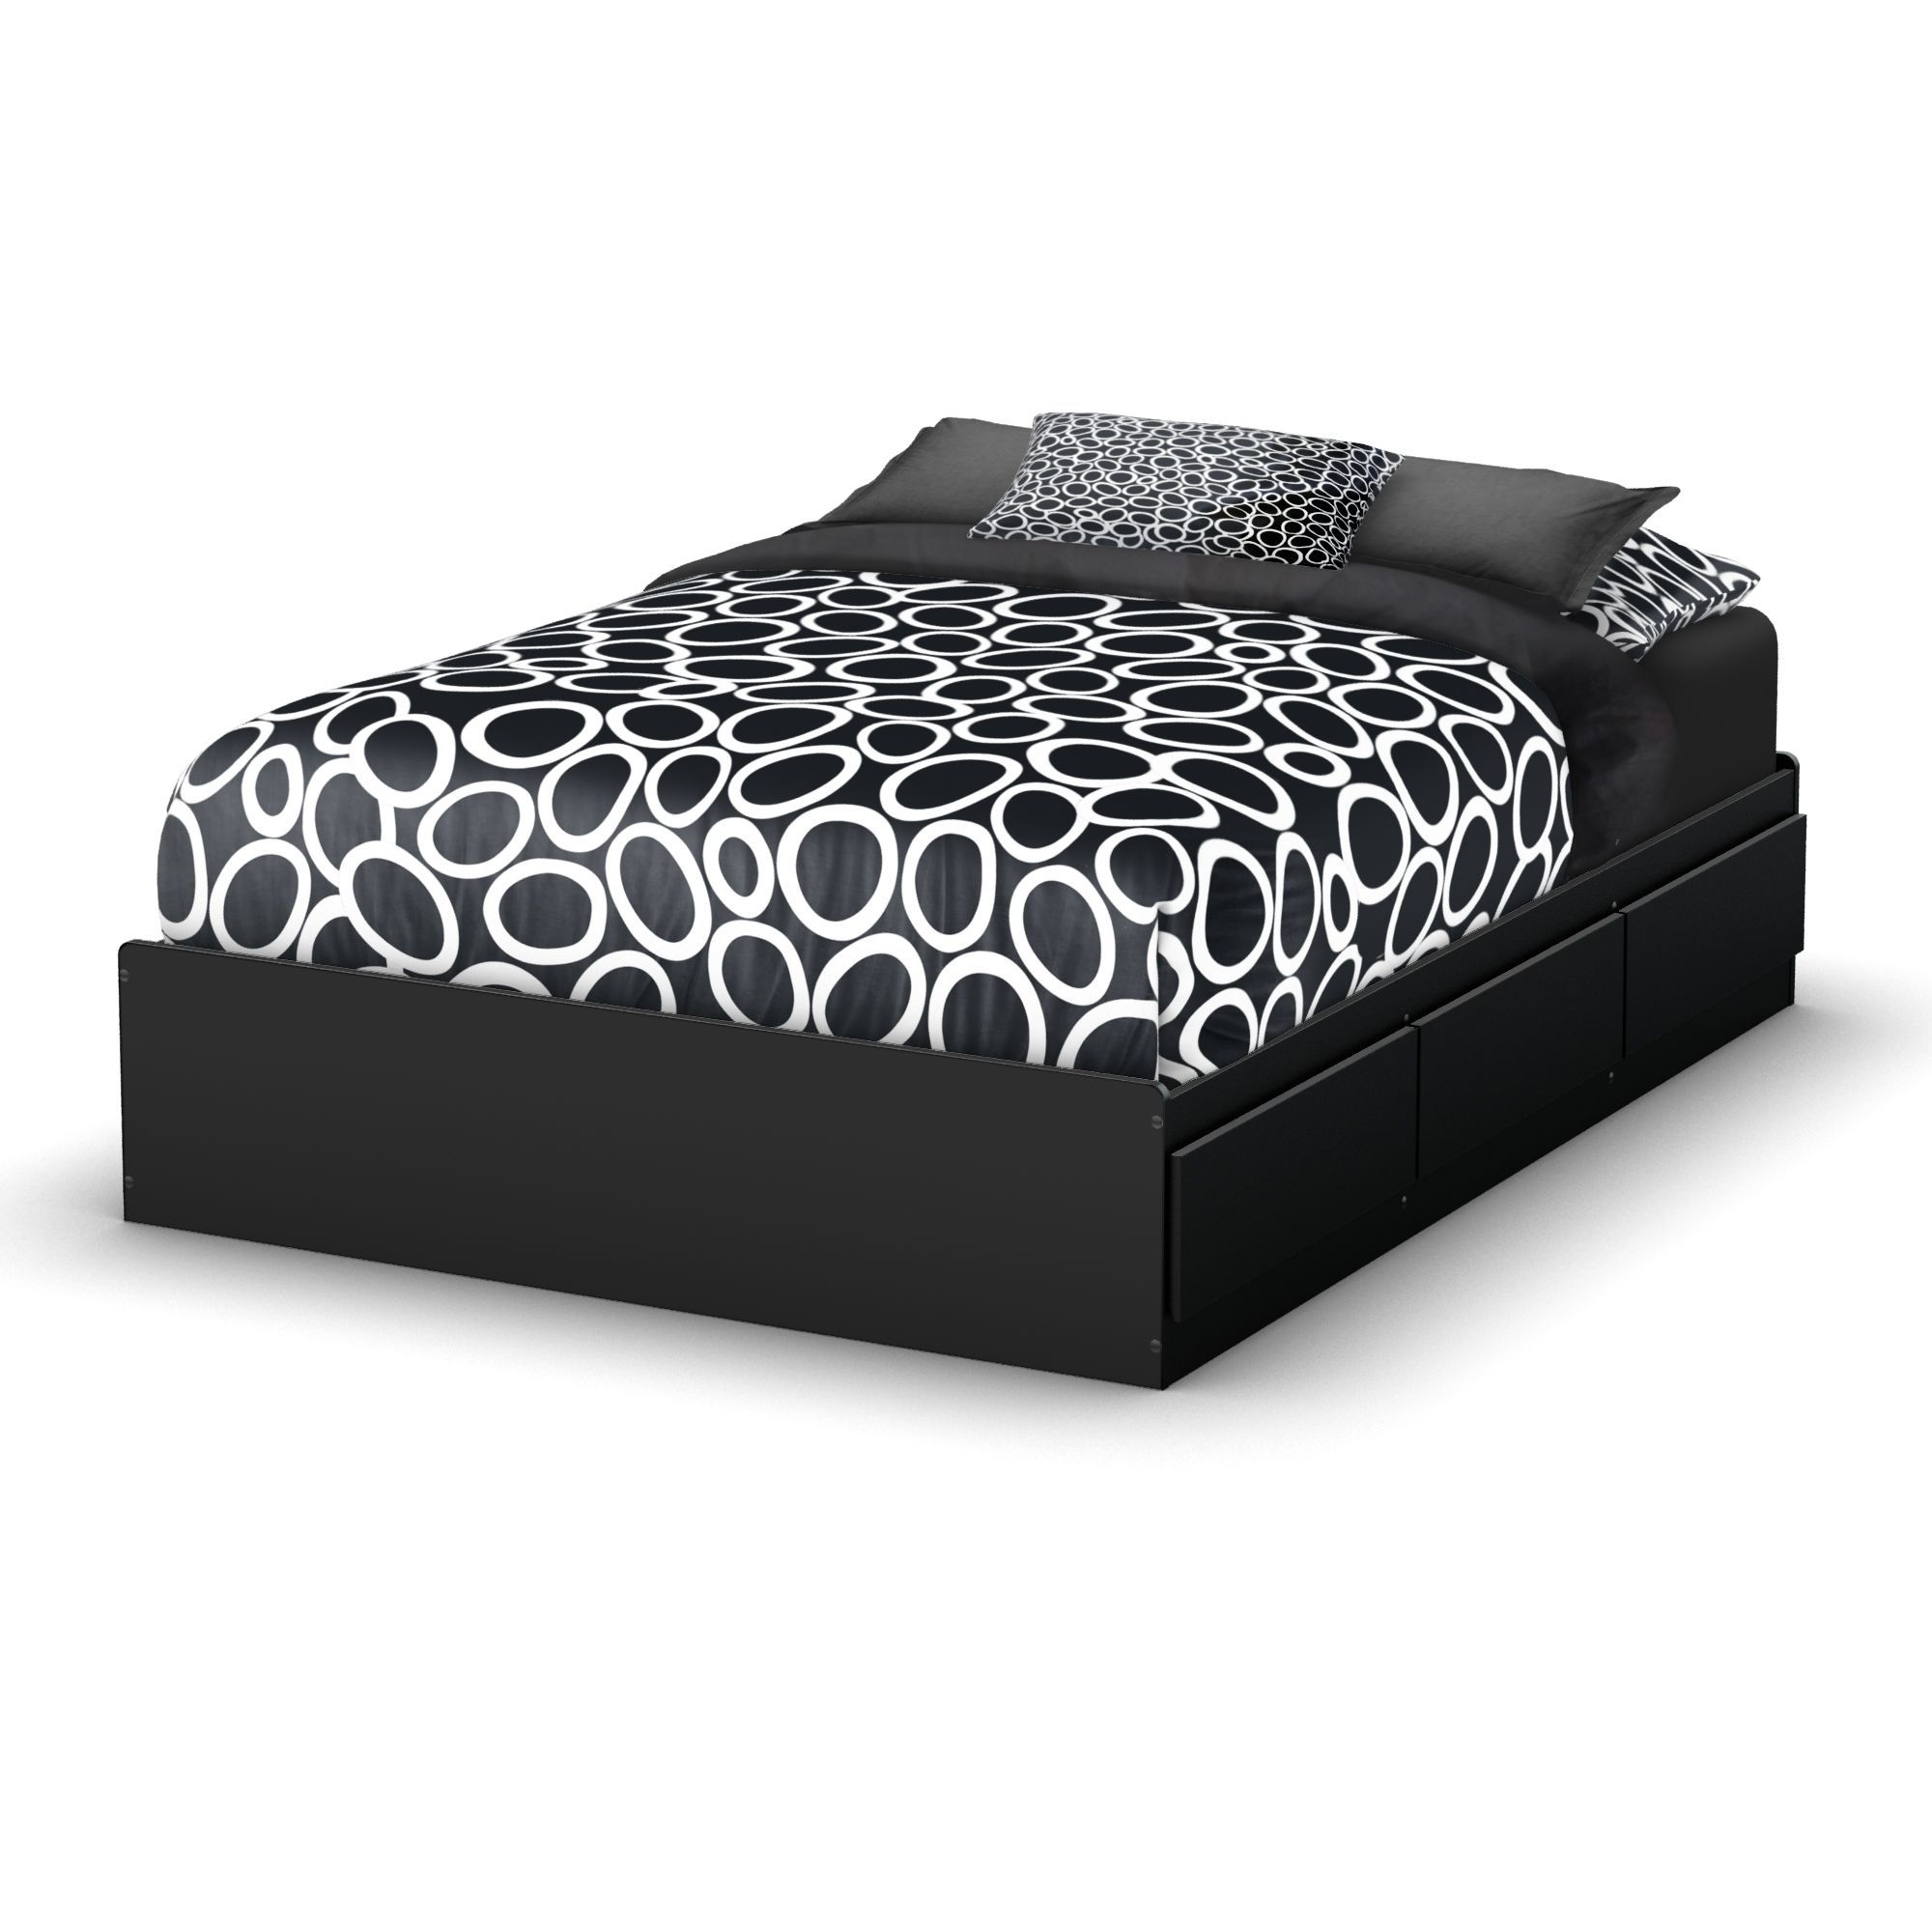 south shore storage bed collection full 54 inch mates bed pure black